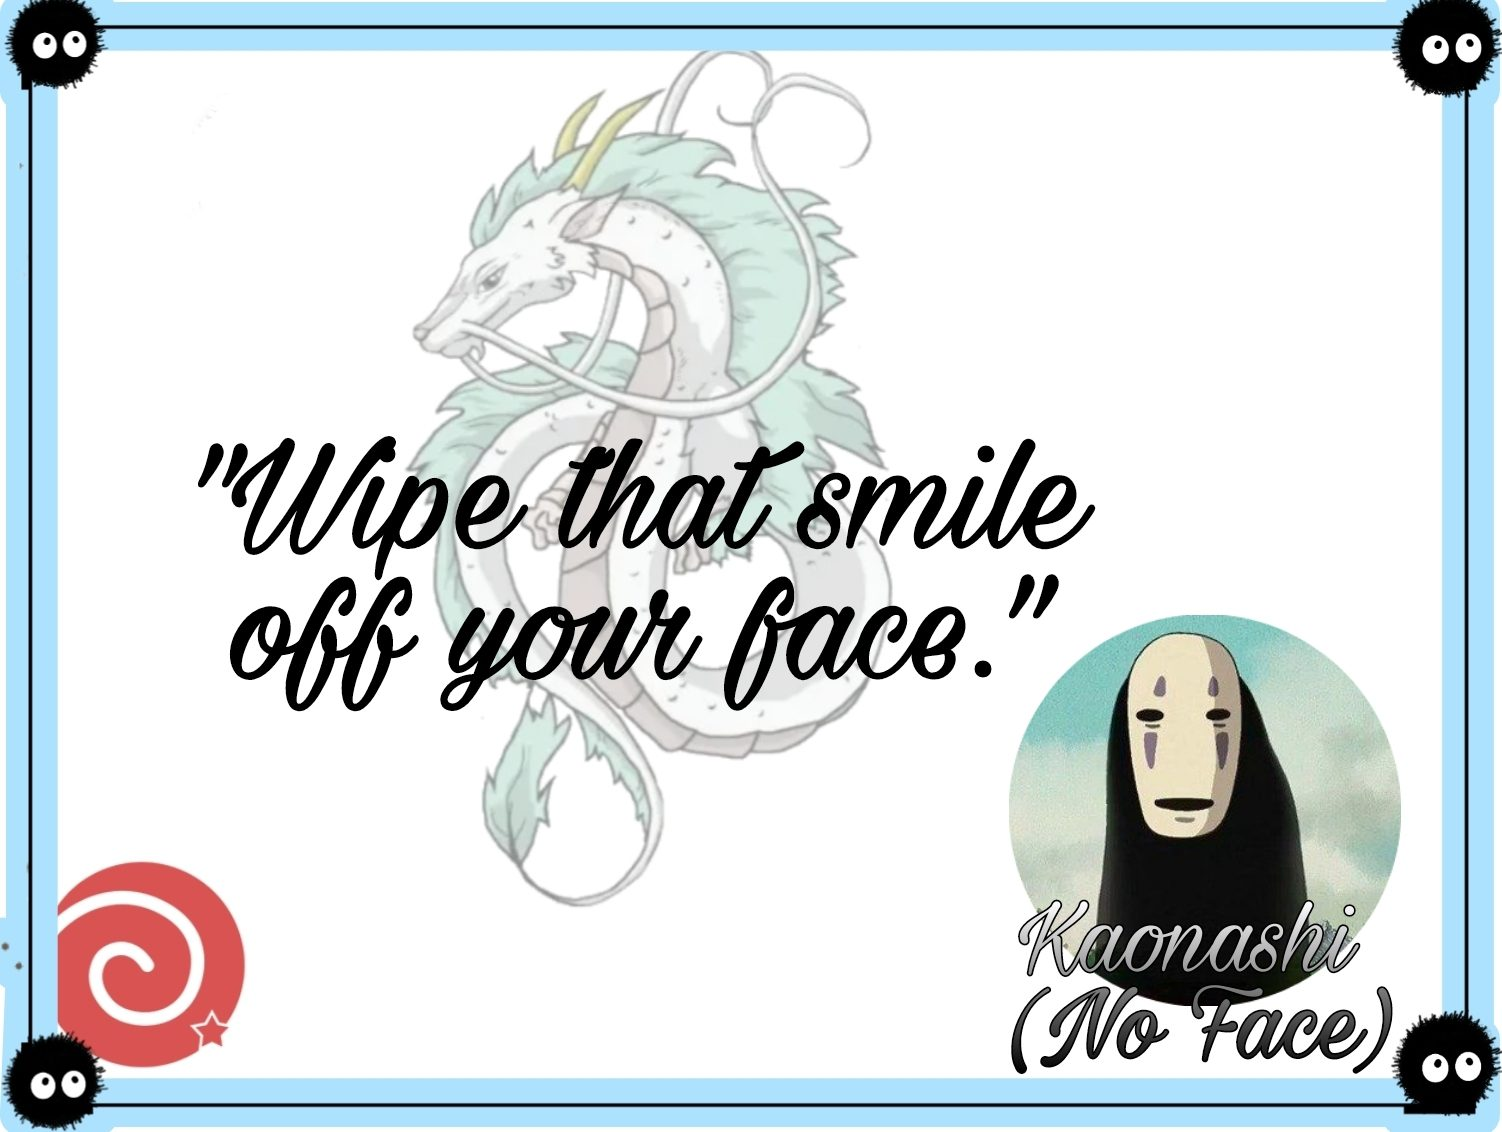 Quotes From Spirited Away by No face